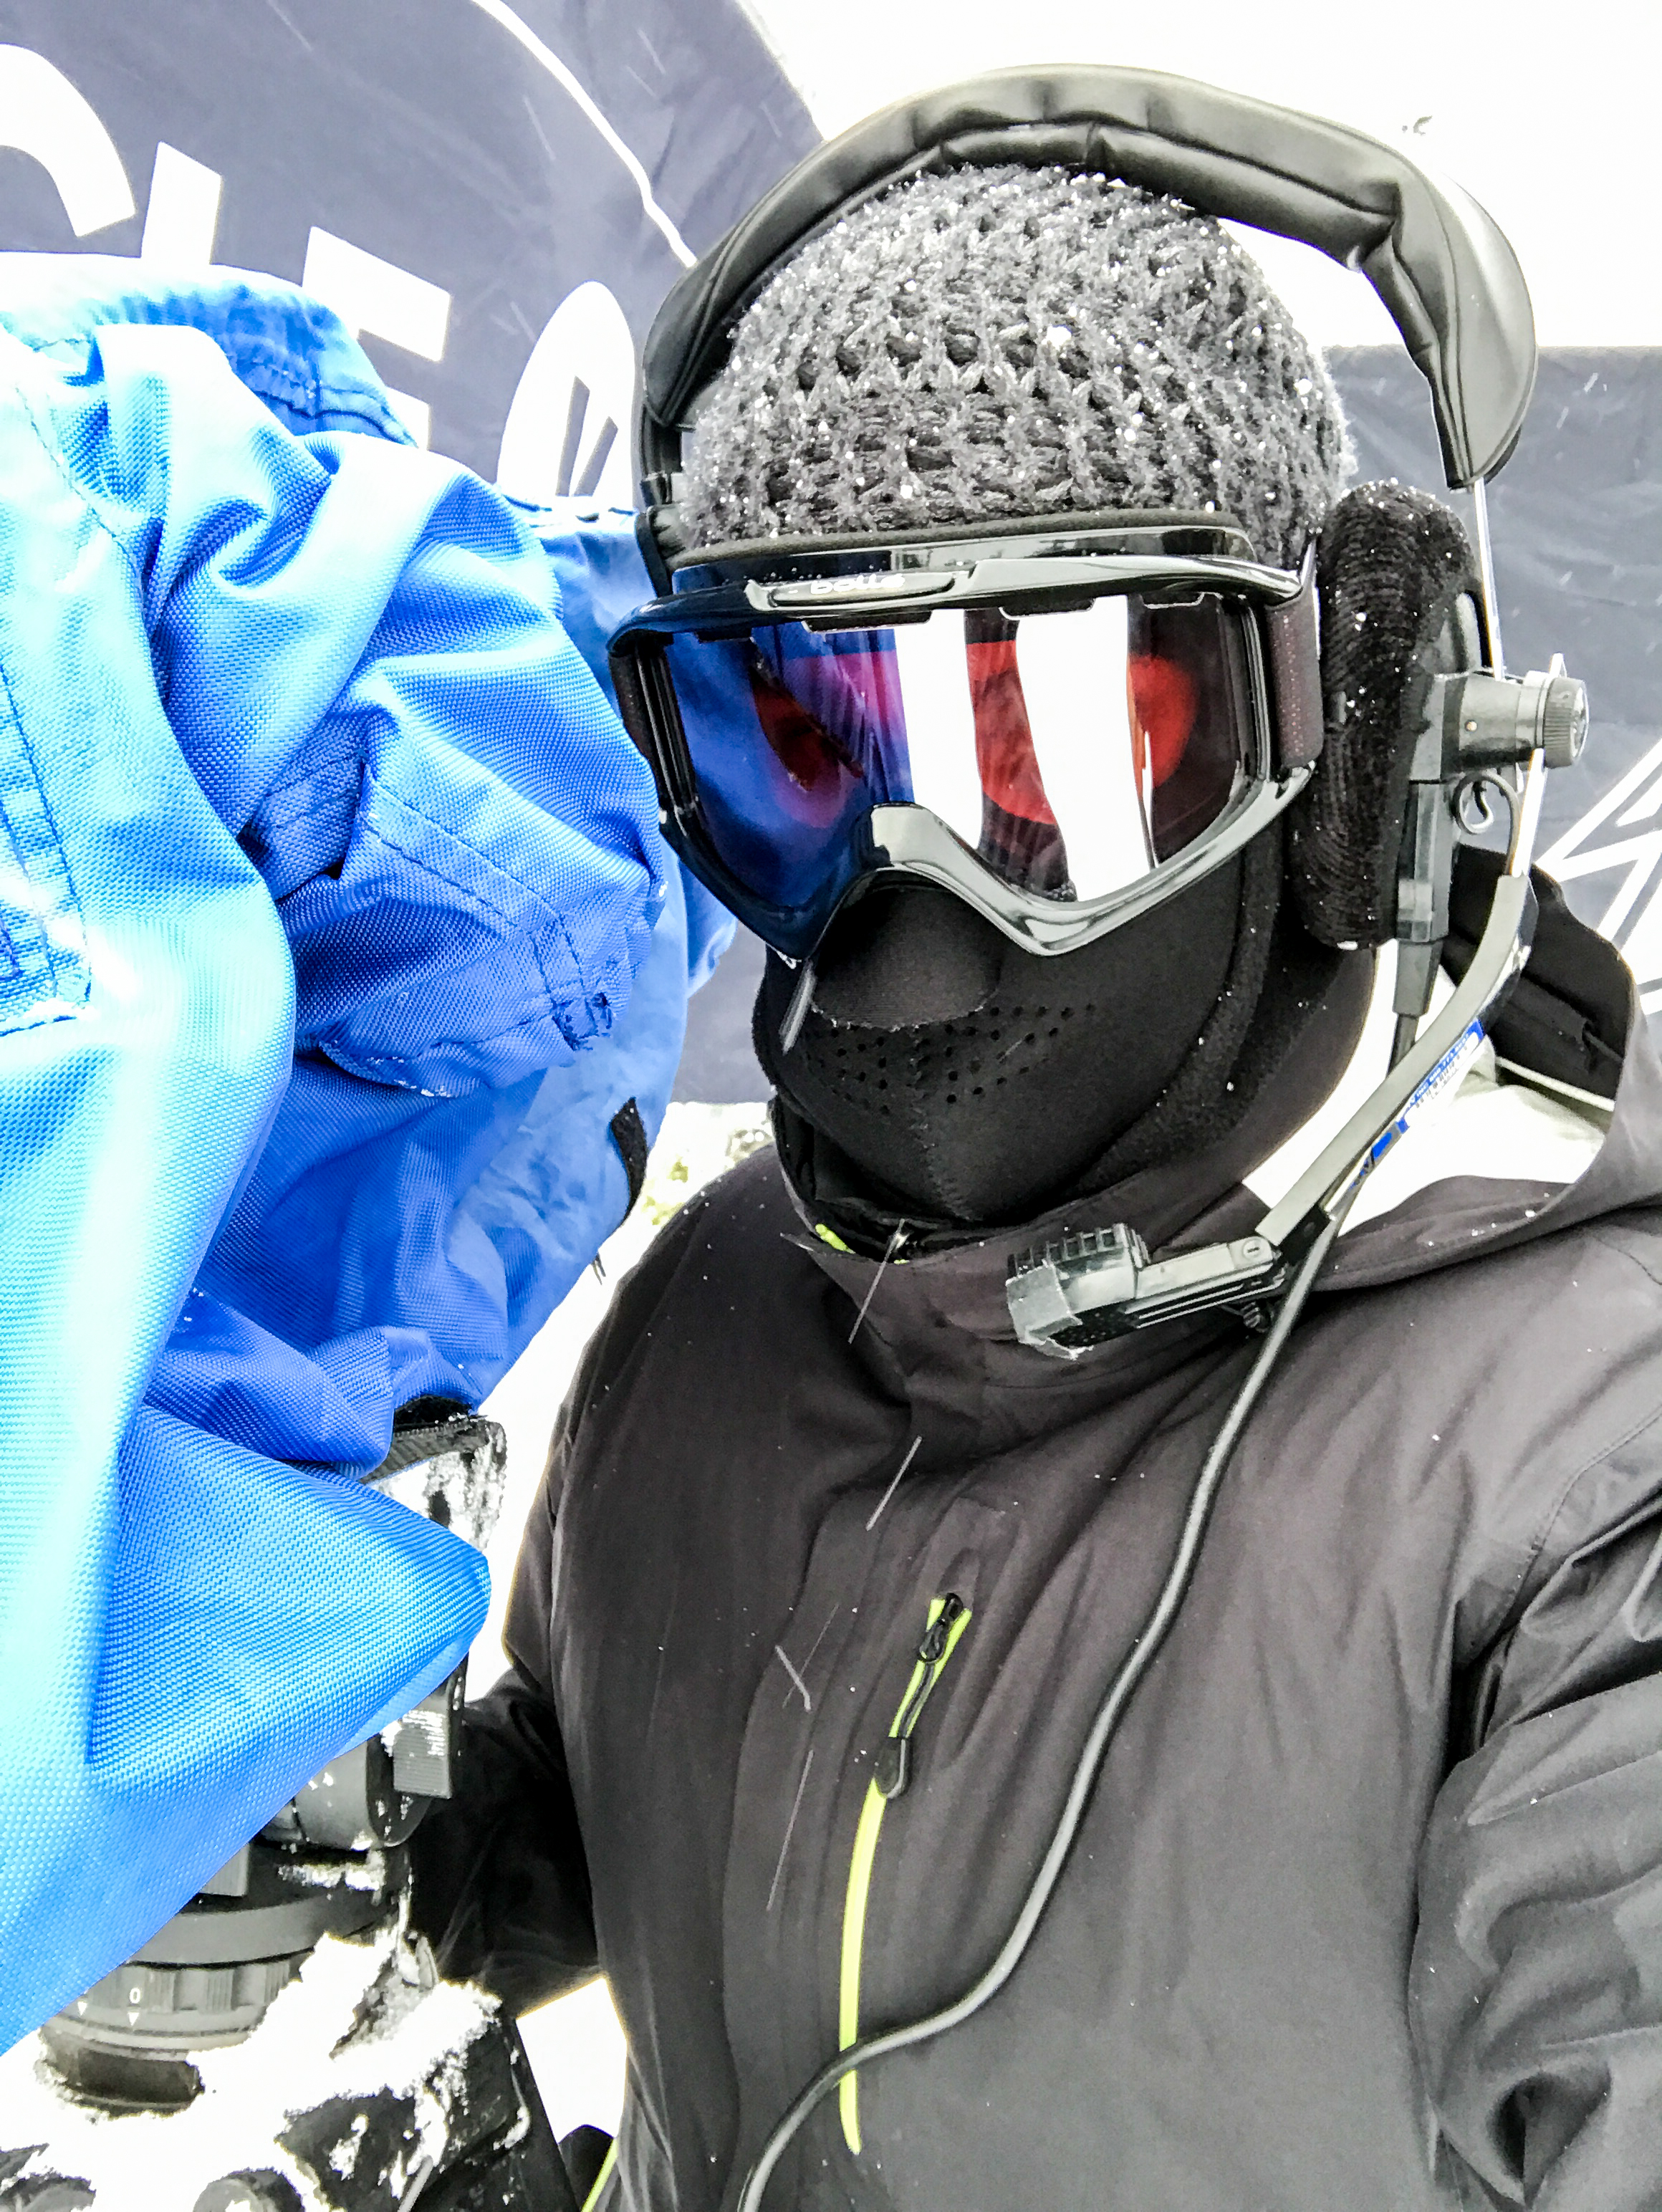 What I looked like for three straight days. Operating in goggles is tricky to say the least.